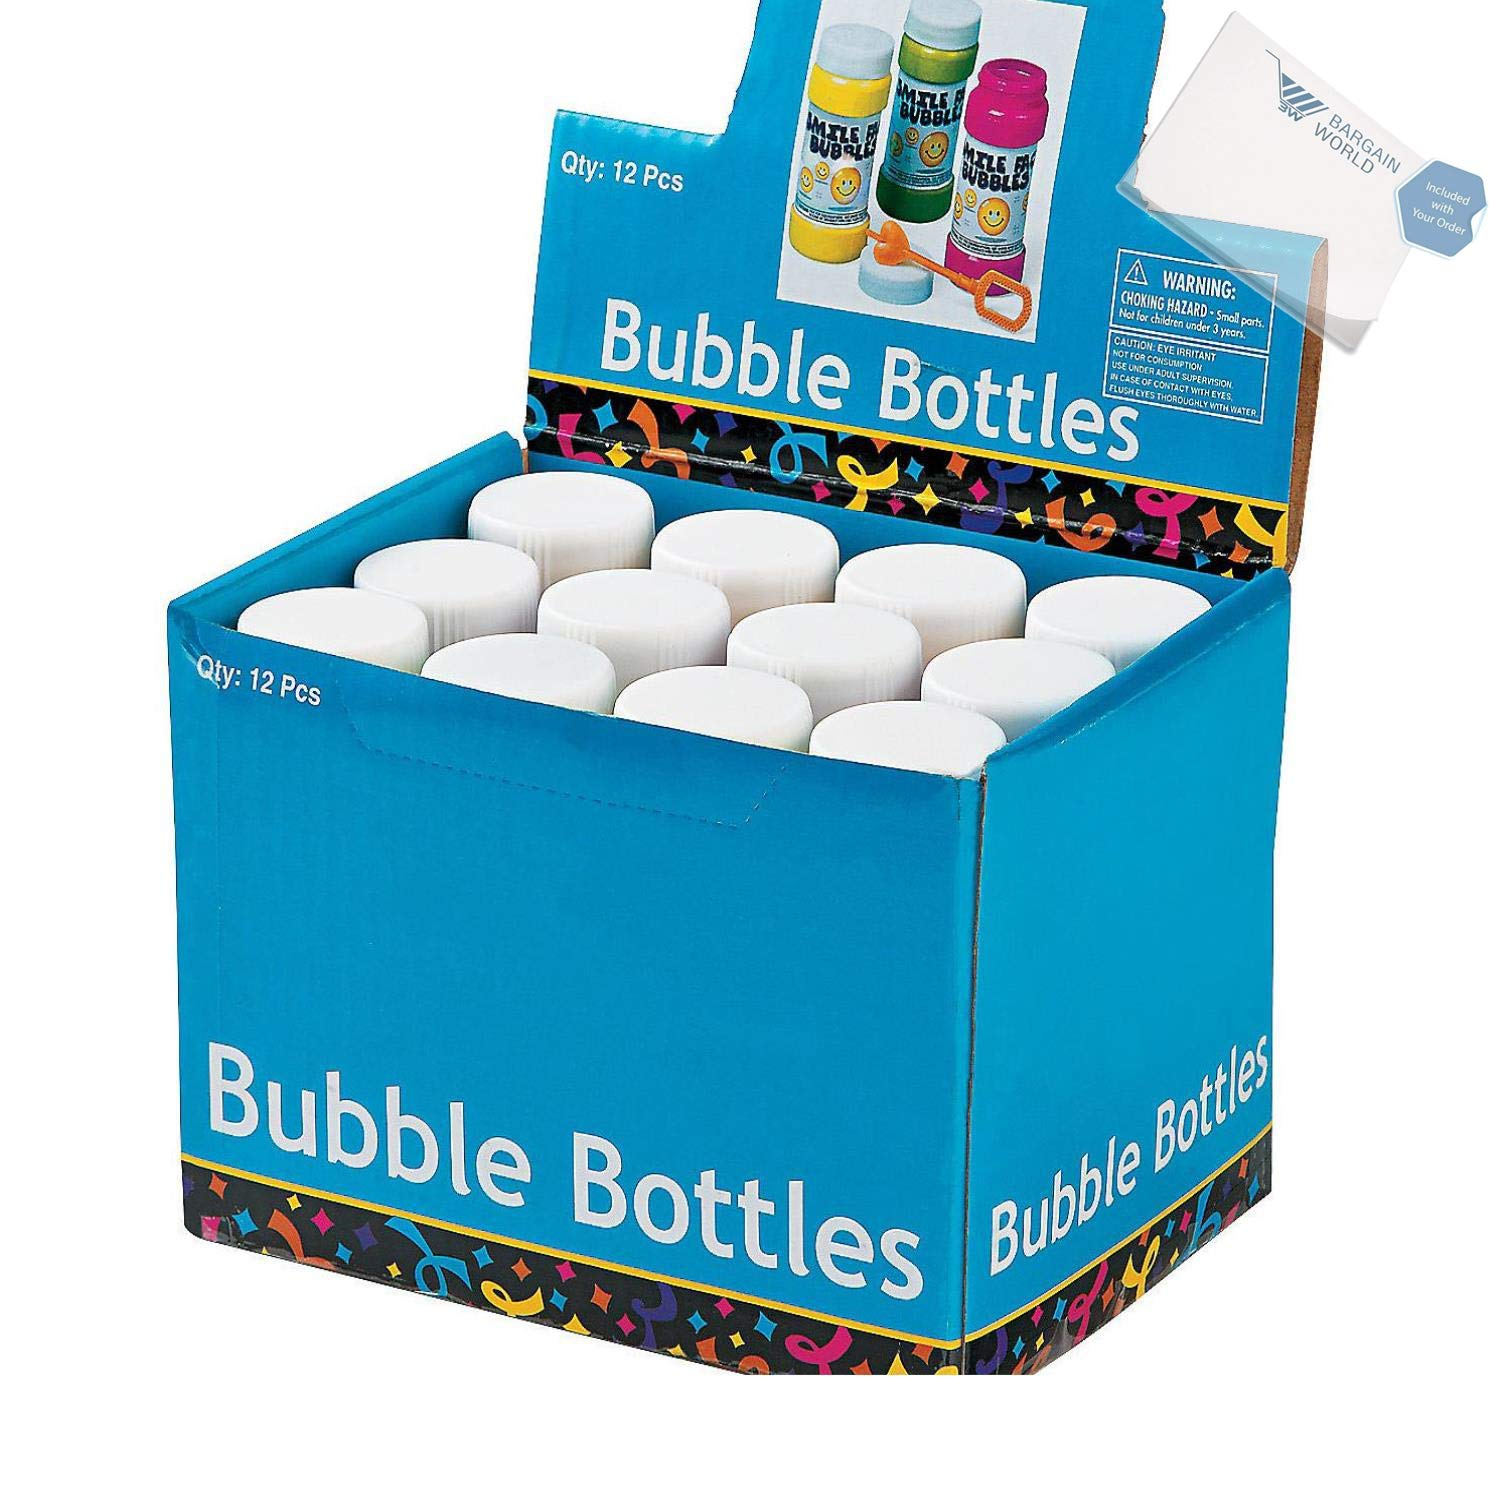 Bargain World Plastic Smile Face Bubble Bottles (With Sticky Notes) by Bargain World (Image #1)